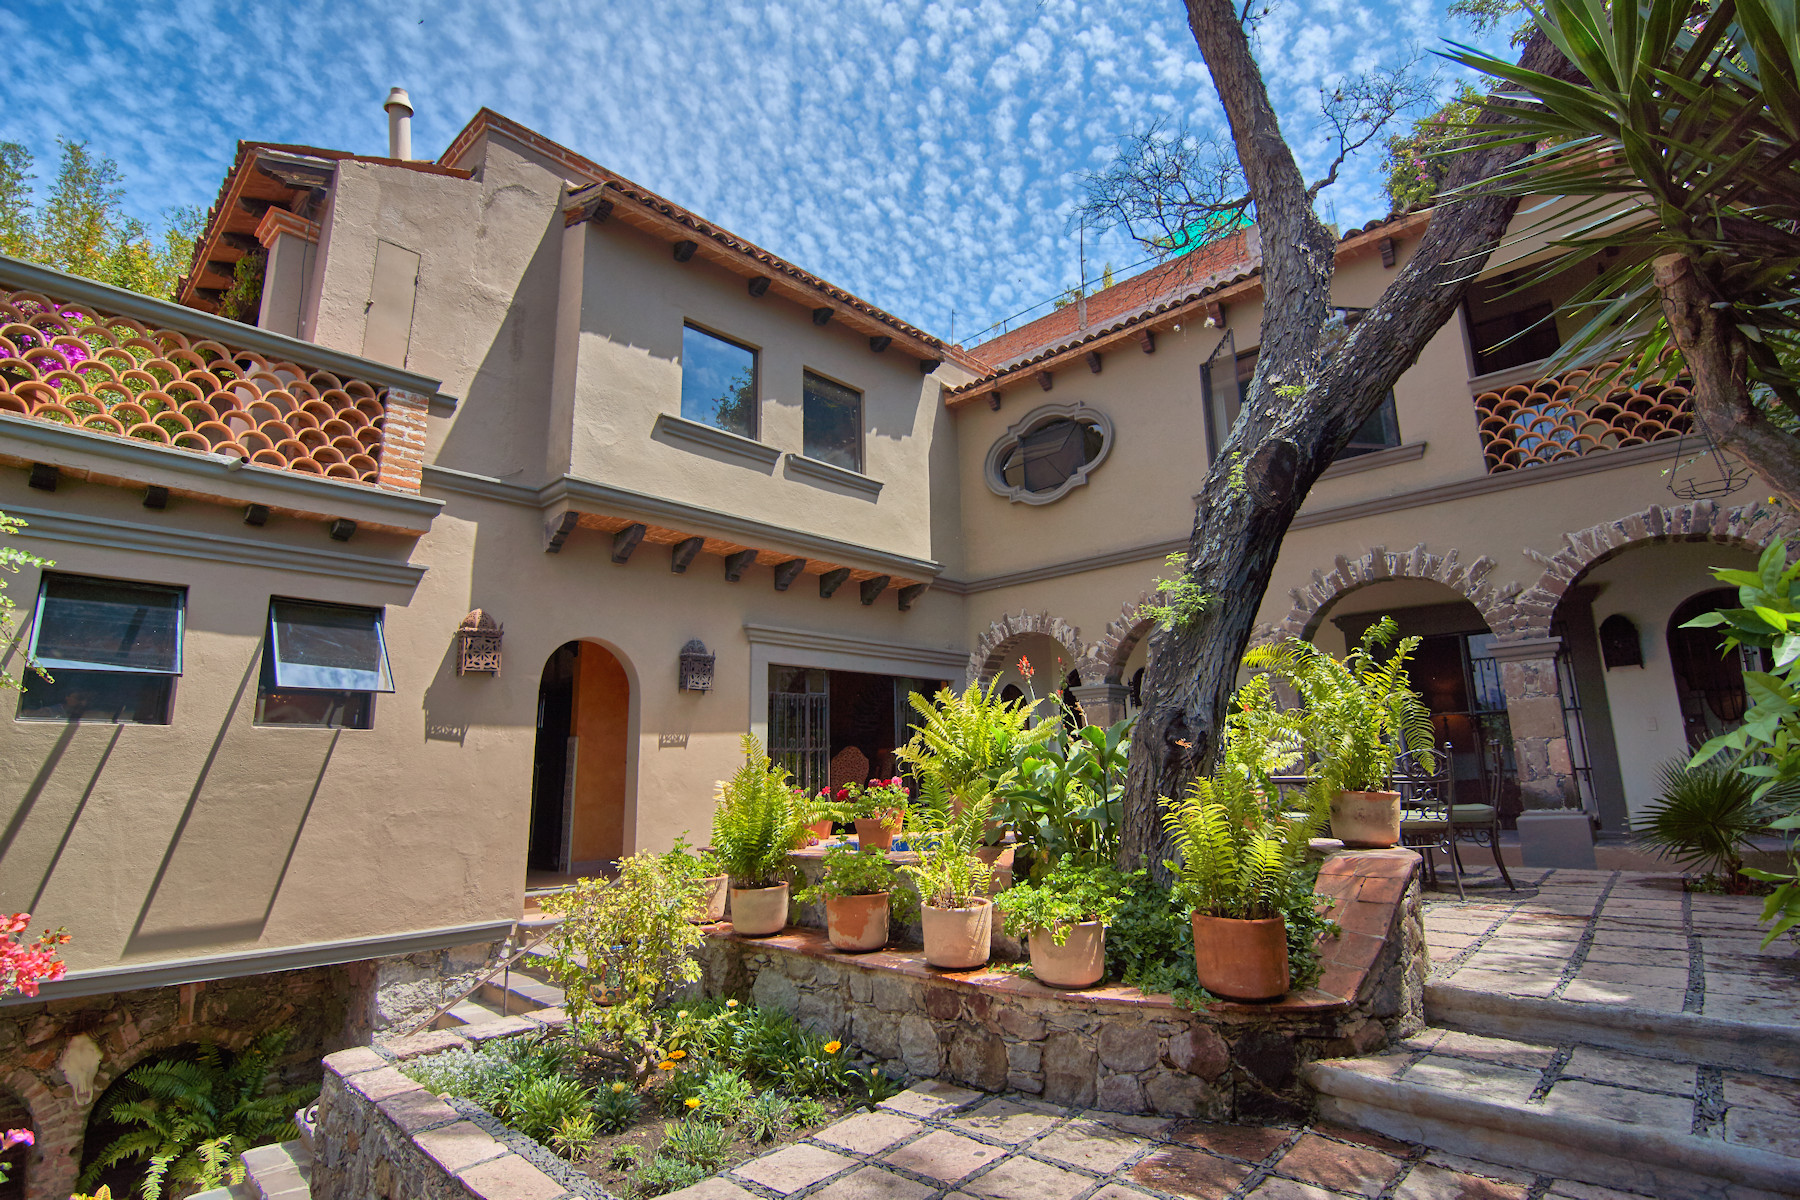 Single Family Home for Sale at Chorro Calle El Chorro San Miguel De Allende, Guanajuato 37700 Mexico